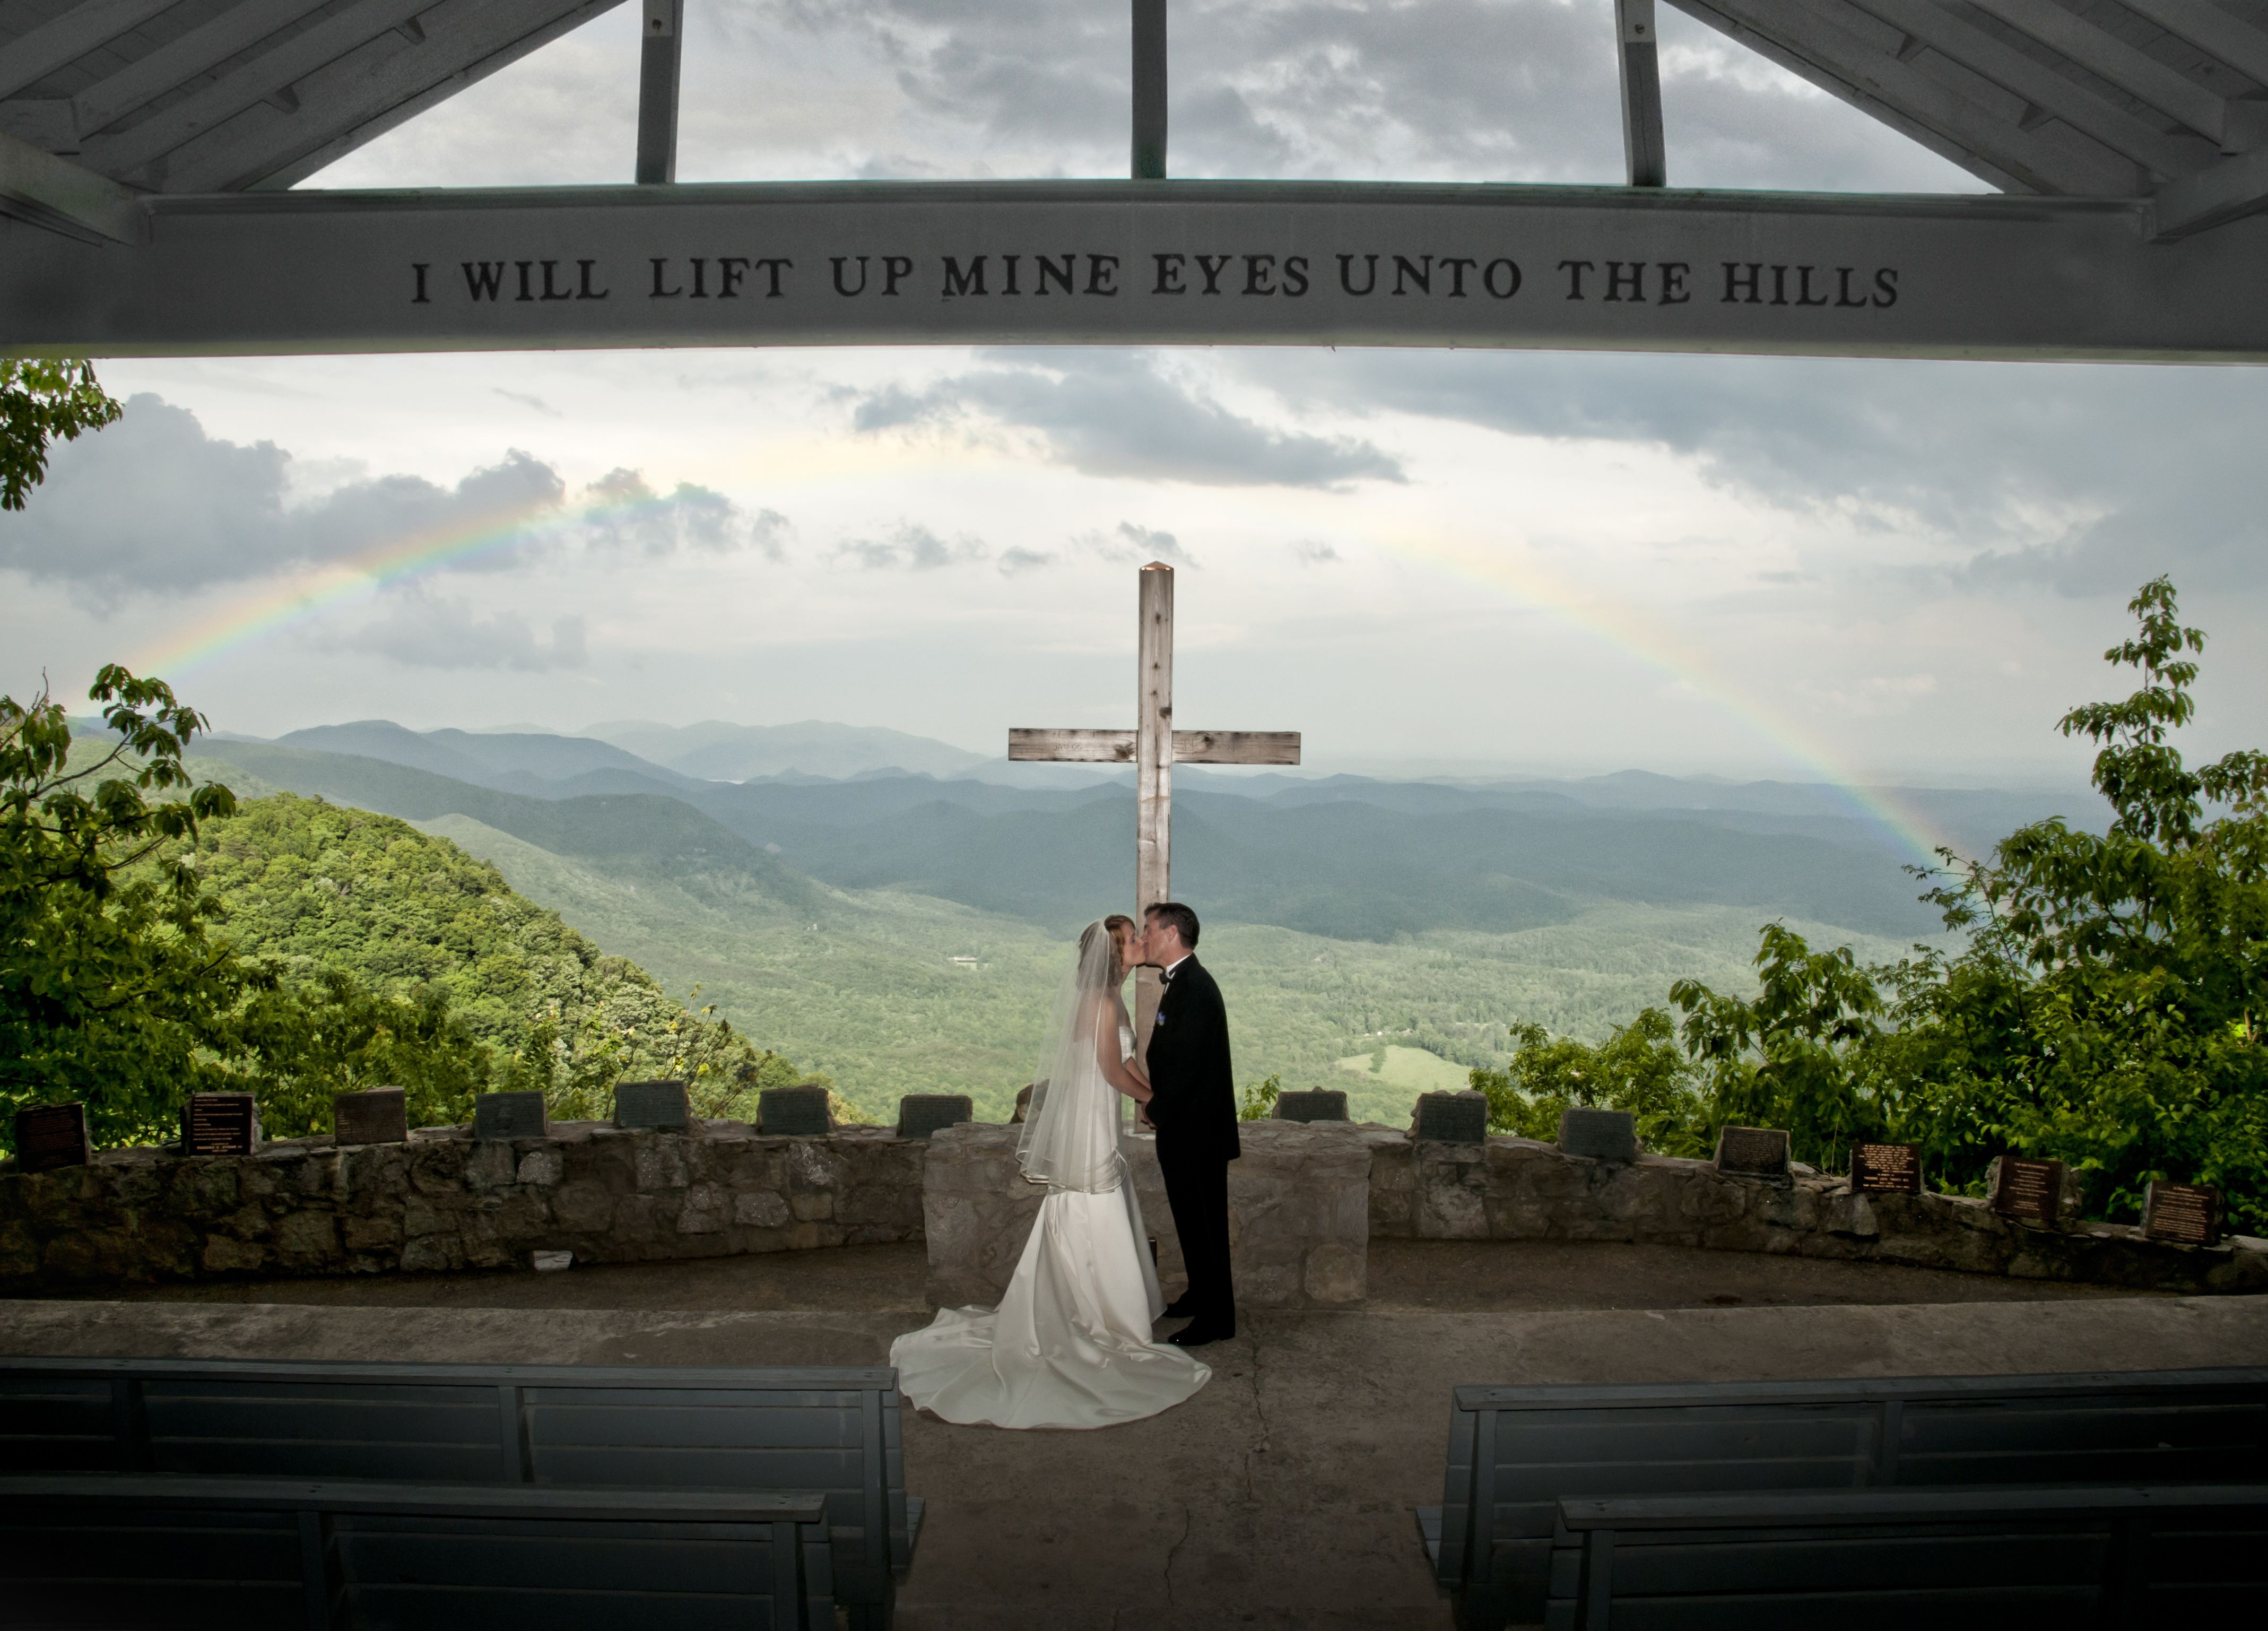 Amanda And Eric At Pretty Place Fred W Symmes Chapel In The Mountains Of South Carolina Touch Grace Photography Was Very Lucky To Have Such An